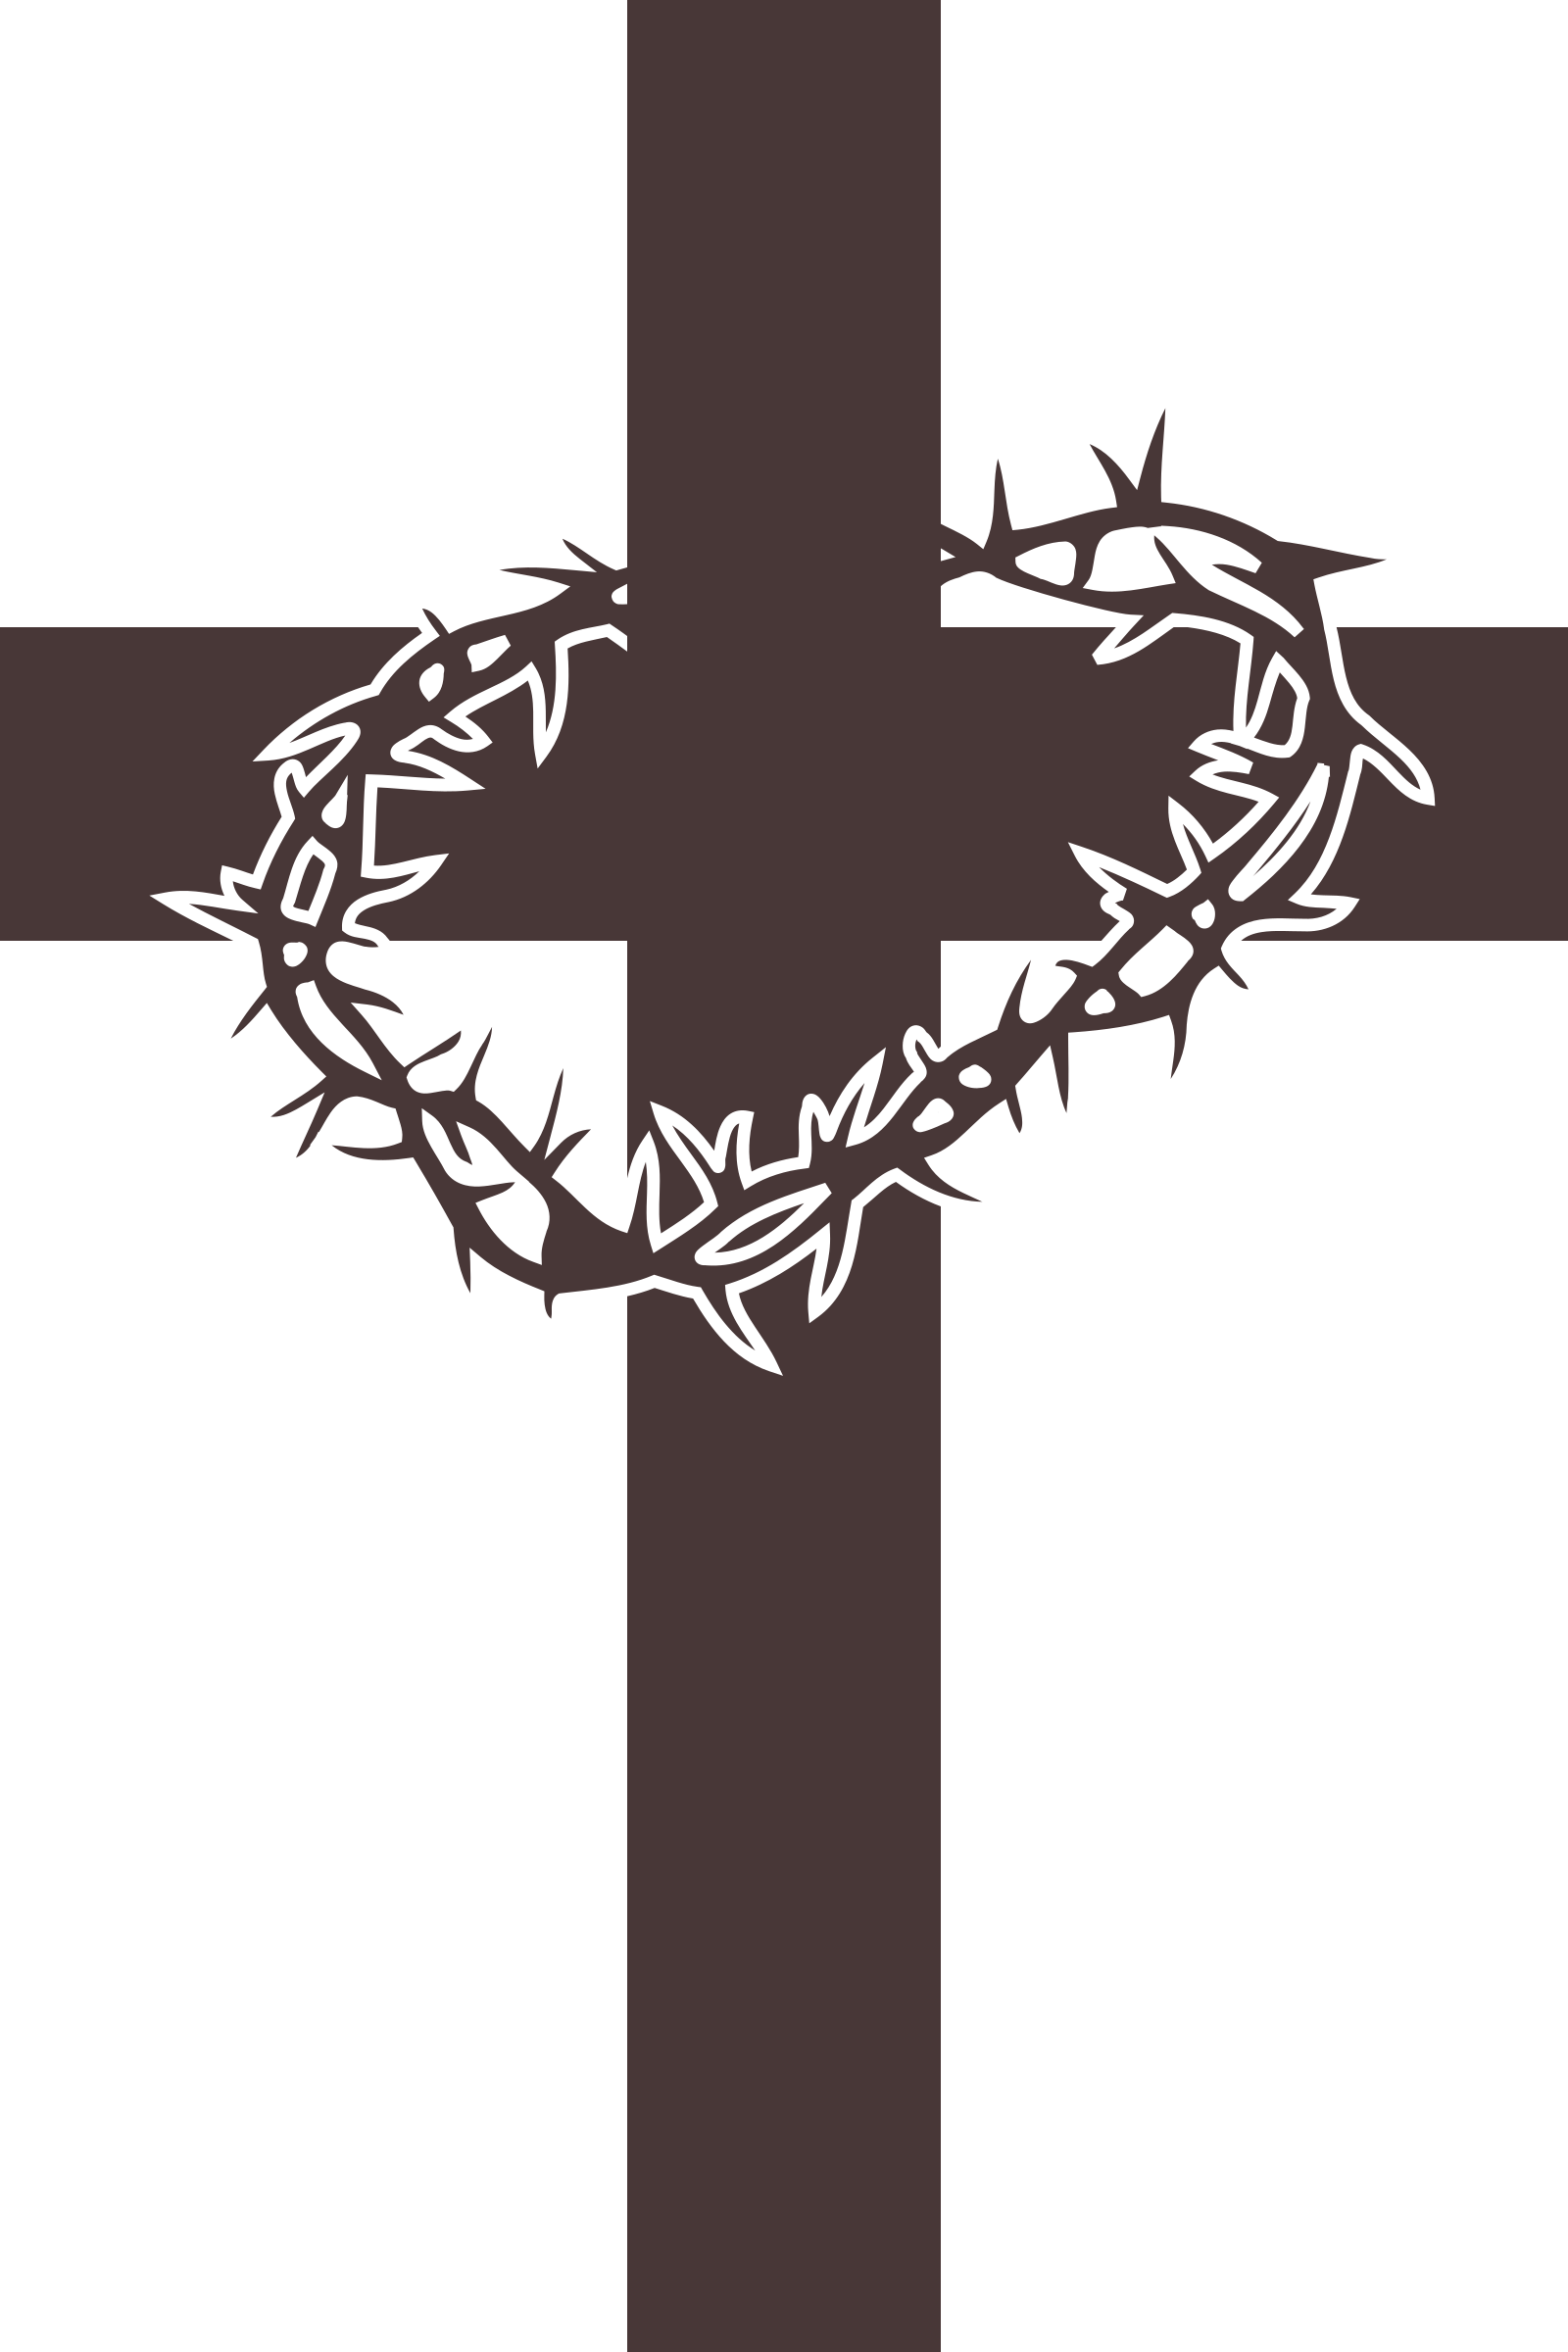 Cross and thorns icon by dear_theophilus